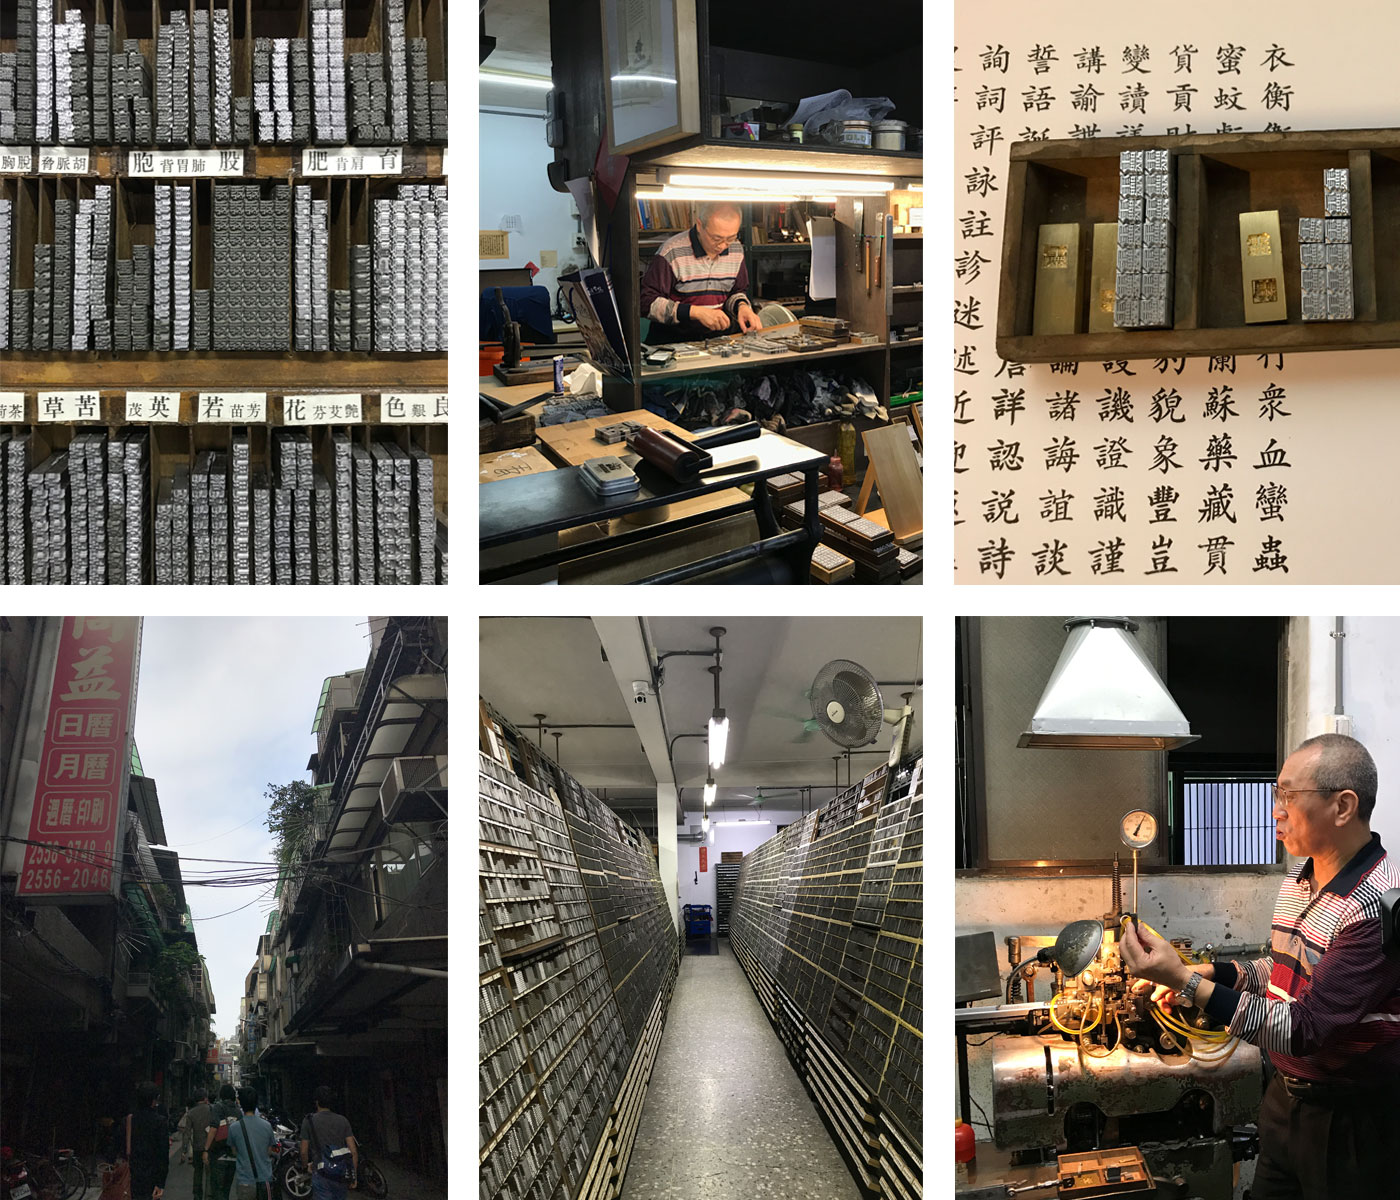 Li Xing Type Foundry in Taipei, Taiwan